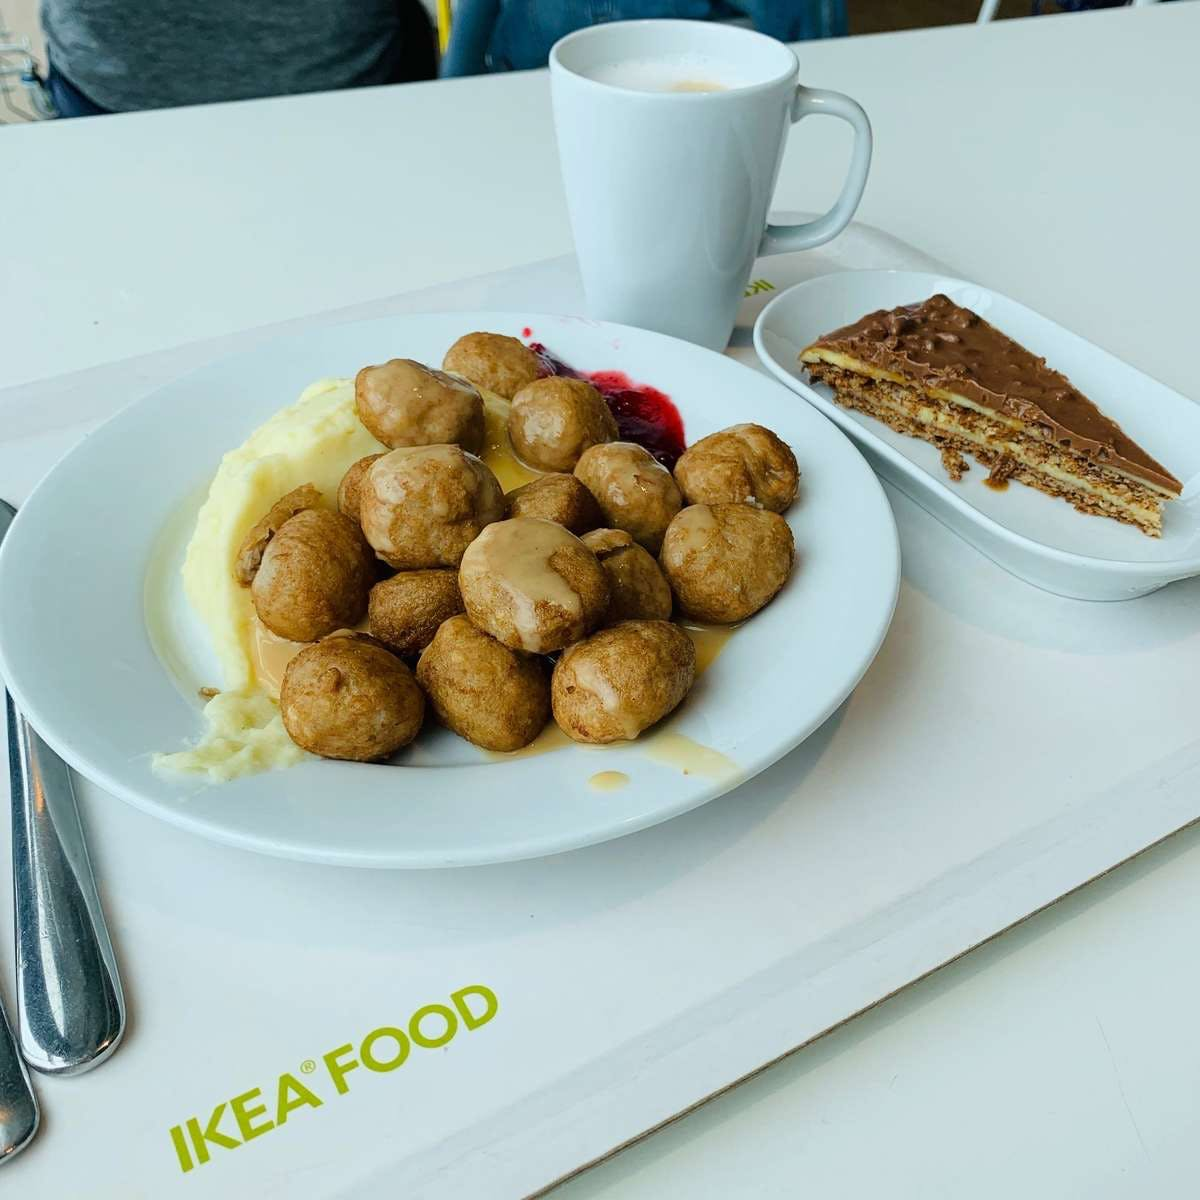 IKEA Restaurant  Caf - Tempe - Pubs Sydney